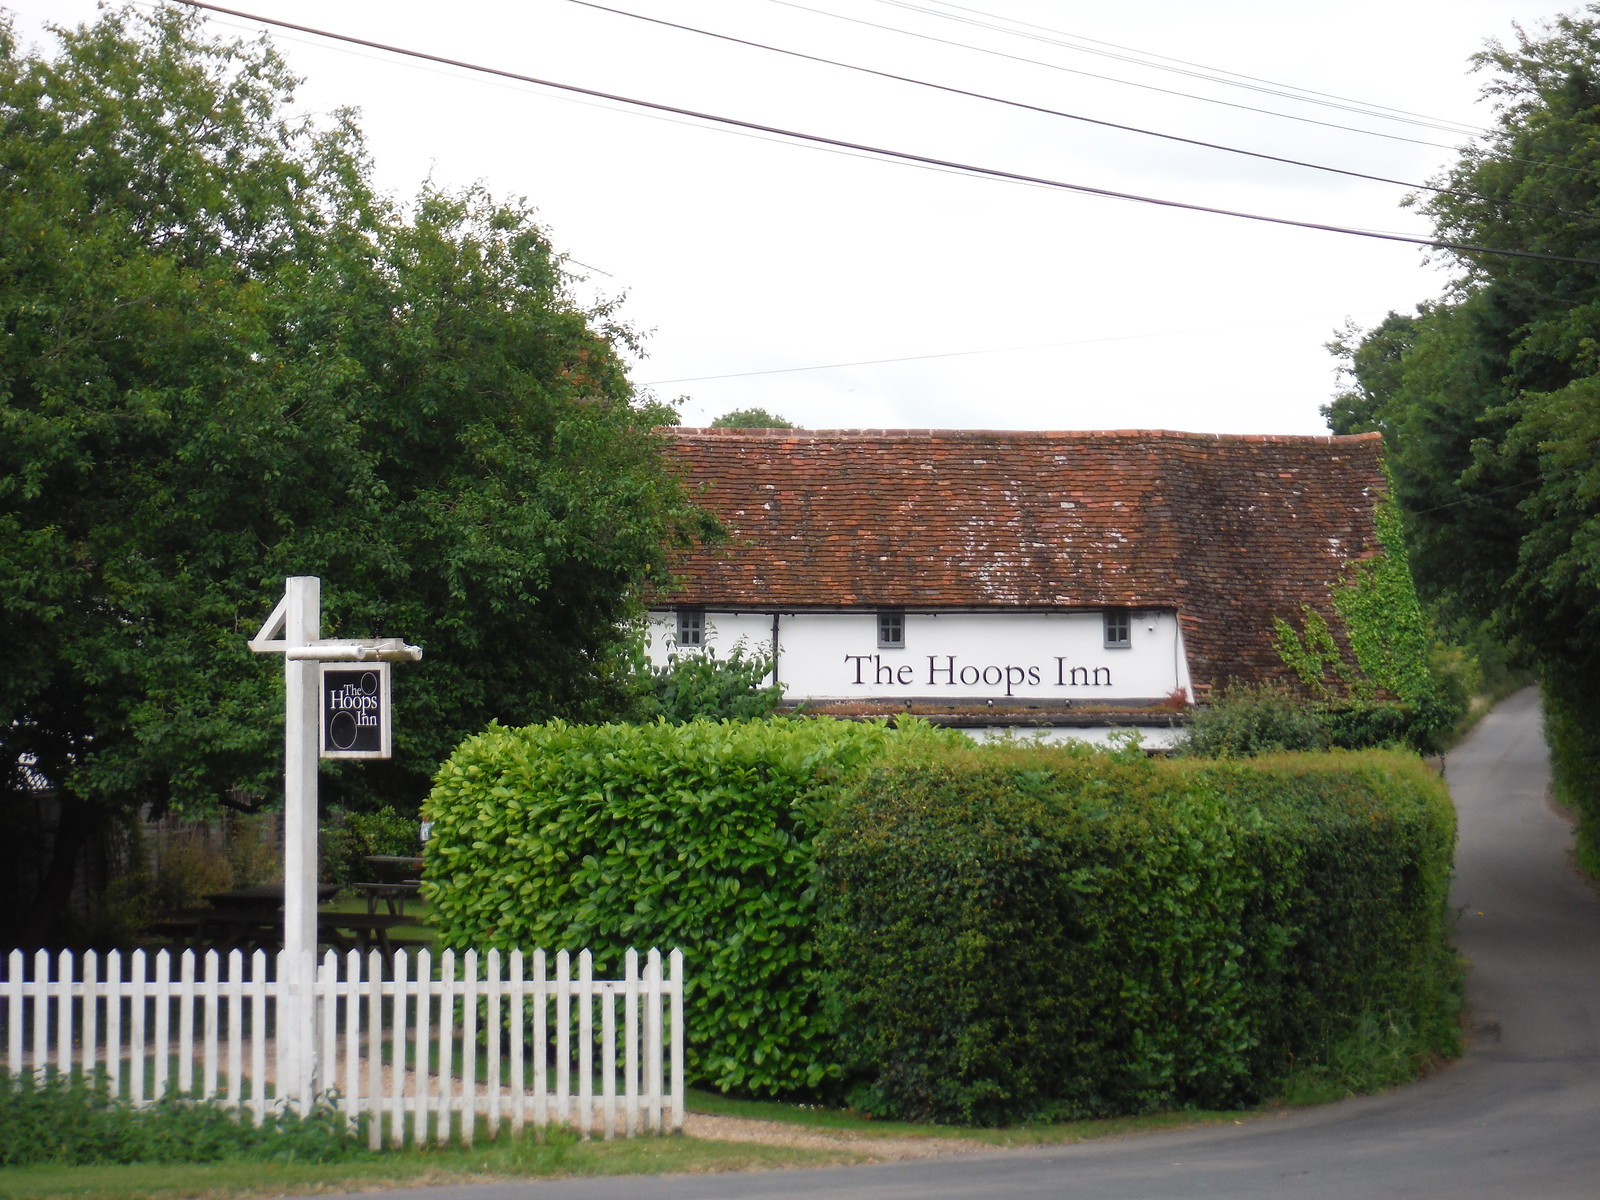 The Hoops Inn, Perry Green SWC Walk 210 - Sawbridgeworth to Bishop's Stortfort (via Henry Moore Foundation)